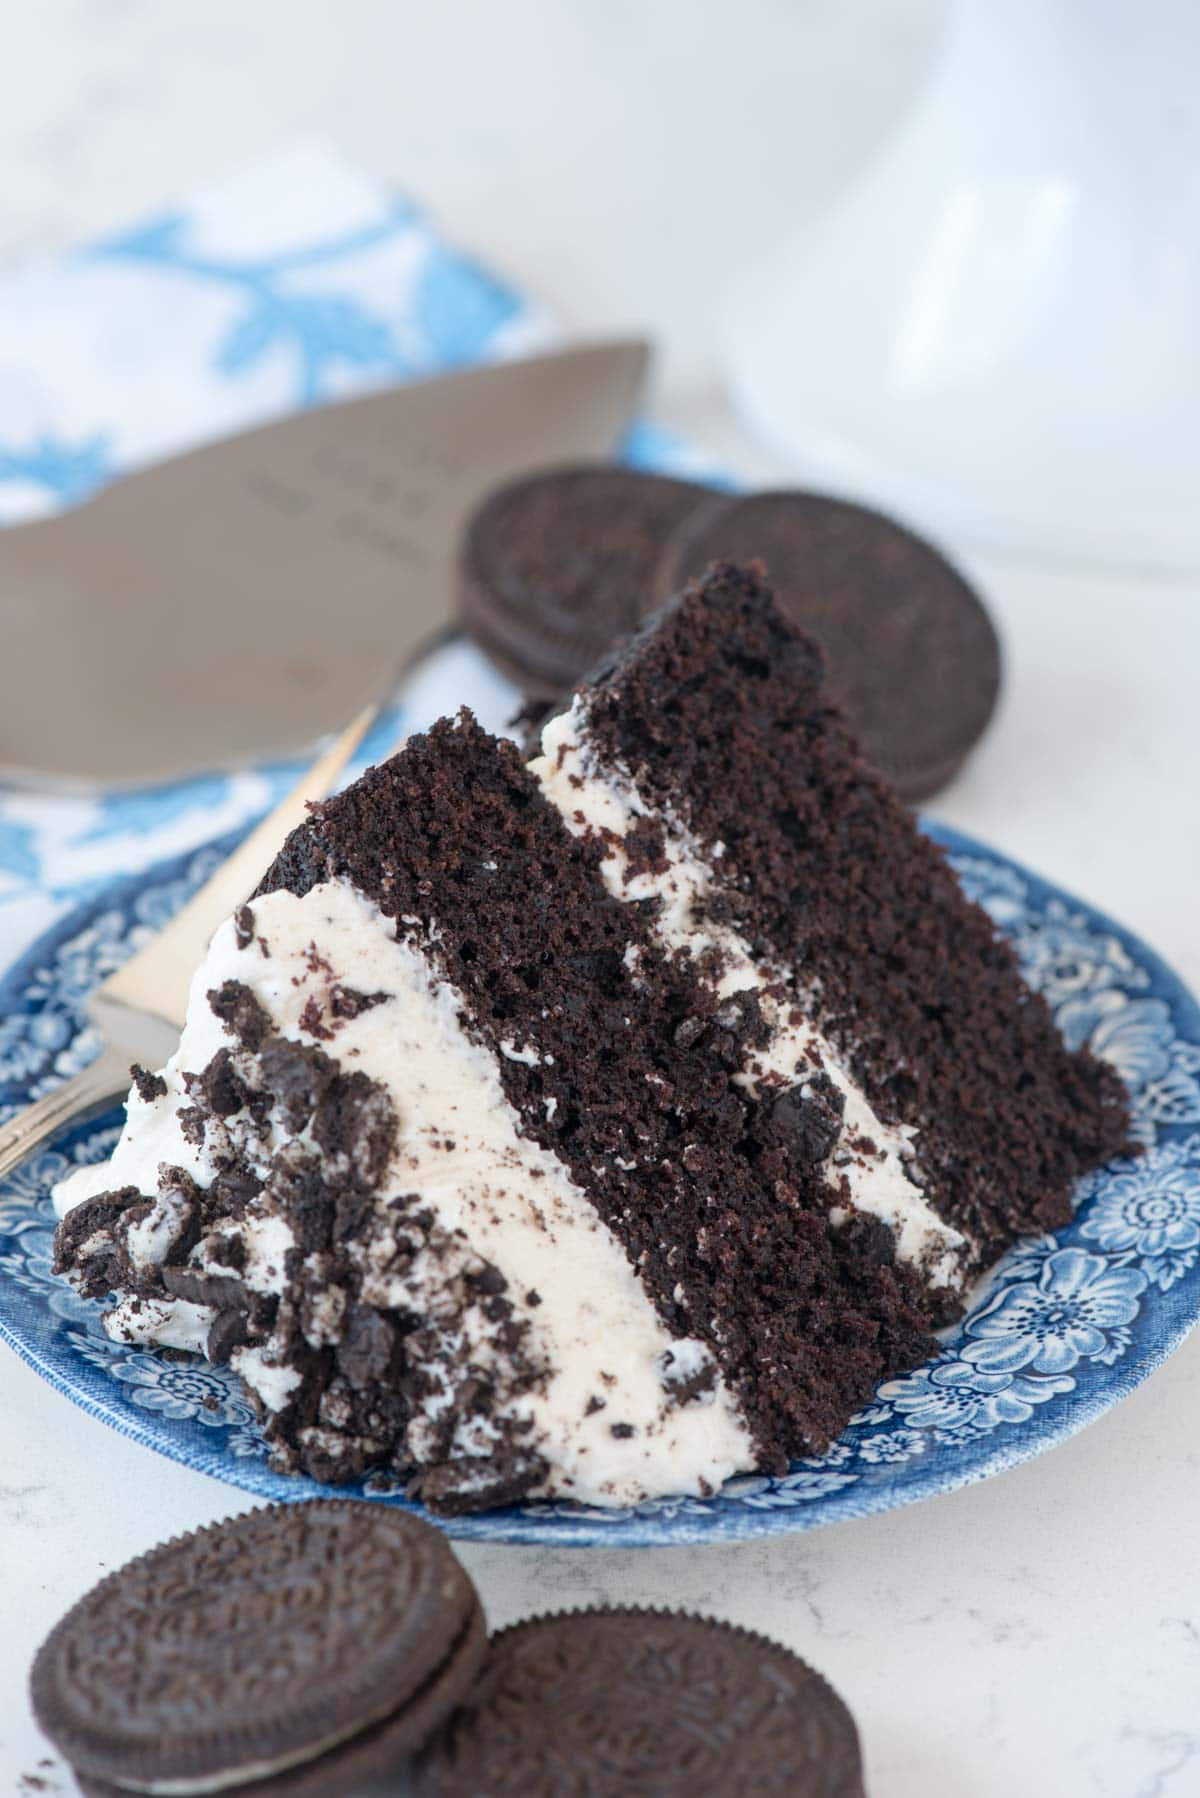 Extreme Cookies 'n Cream Cake - this cake tastes like an Oreo cookie! Dark chocolate cake layers sandwiched with a marshmallow buttercream frosting and lots of crushed Oreo cookies. I made two of these in two days!